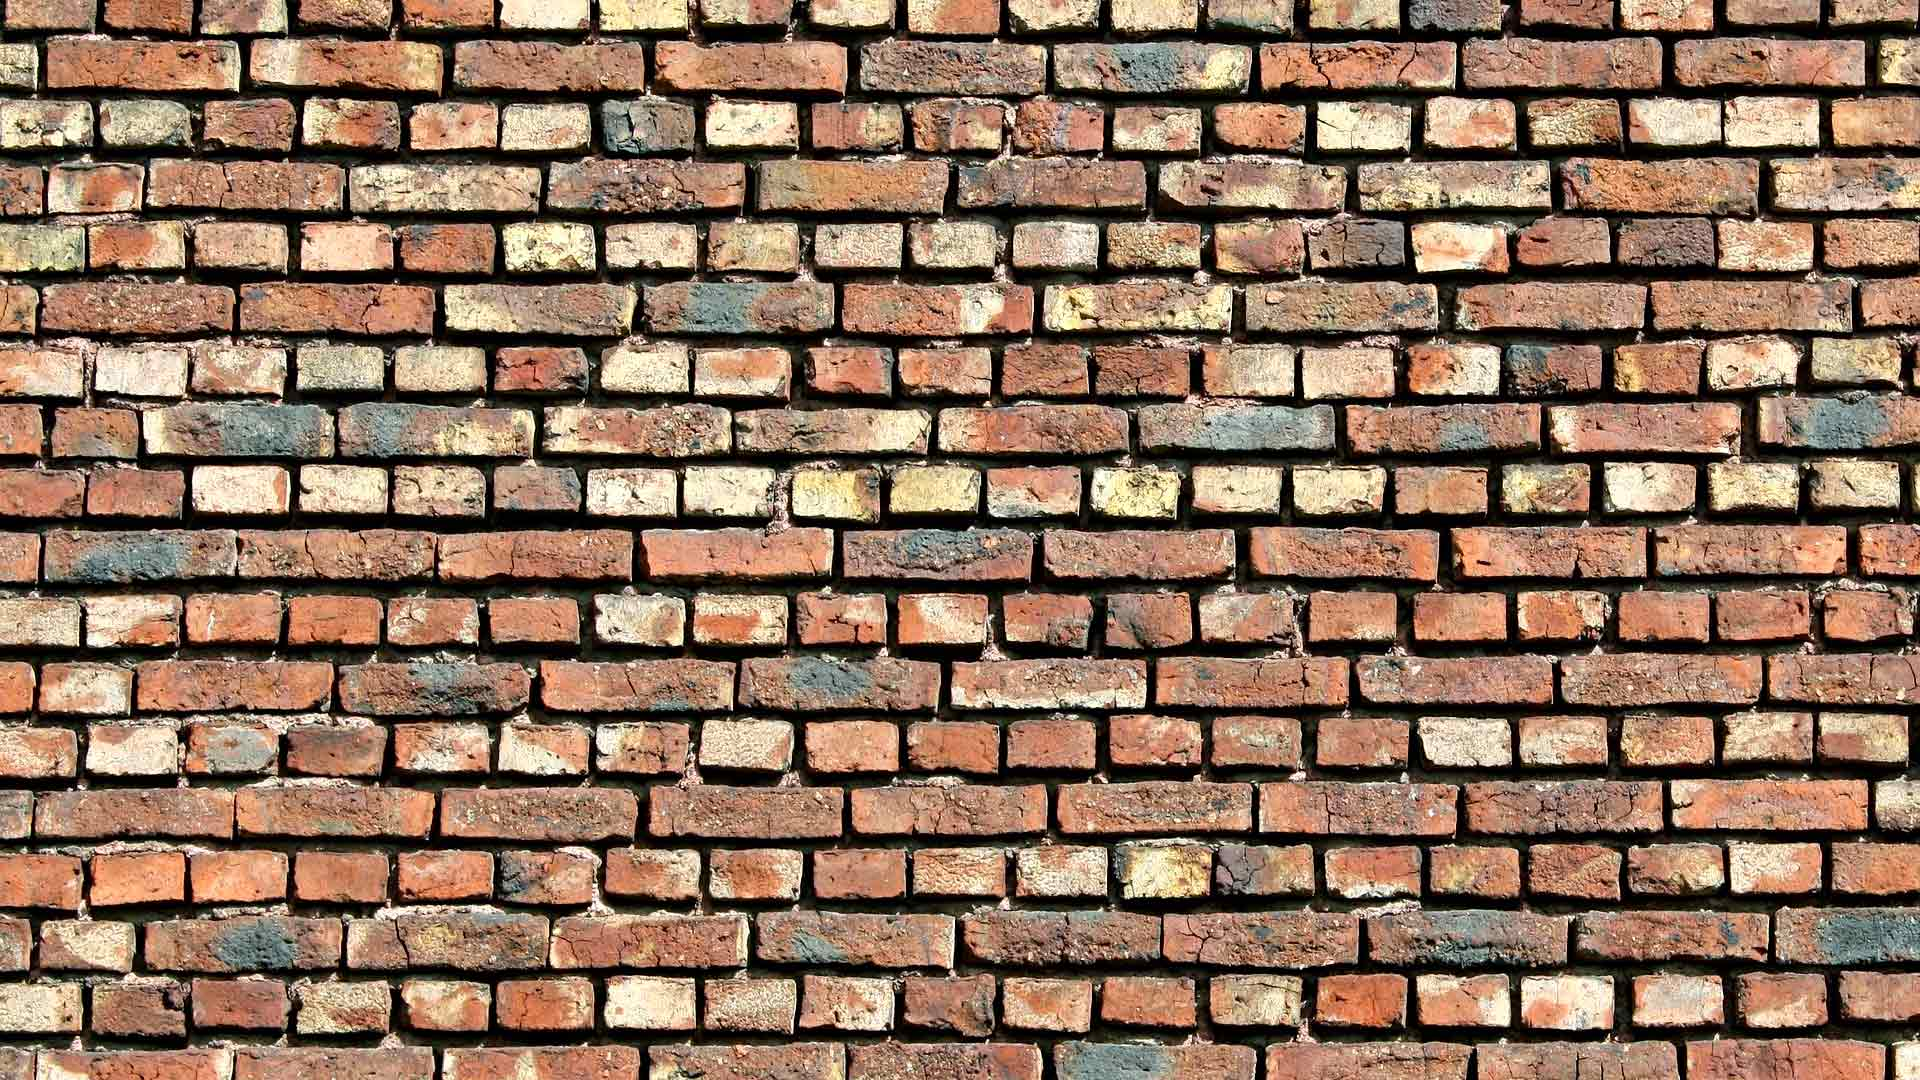 Brick Wall Zoom Background Images Free Virtual Meeting Backgrounds